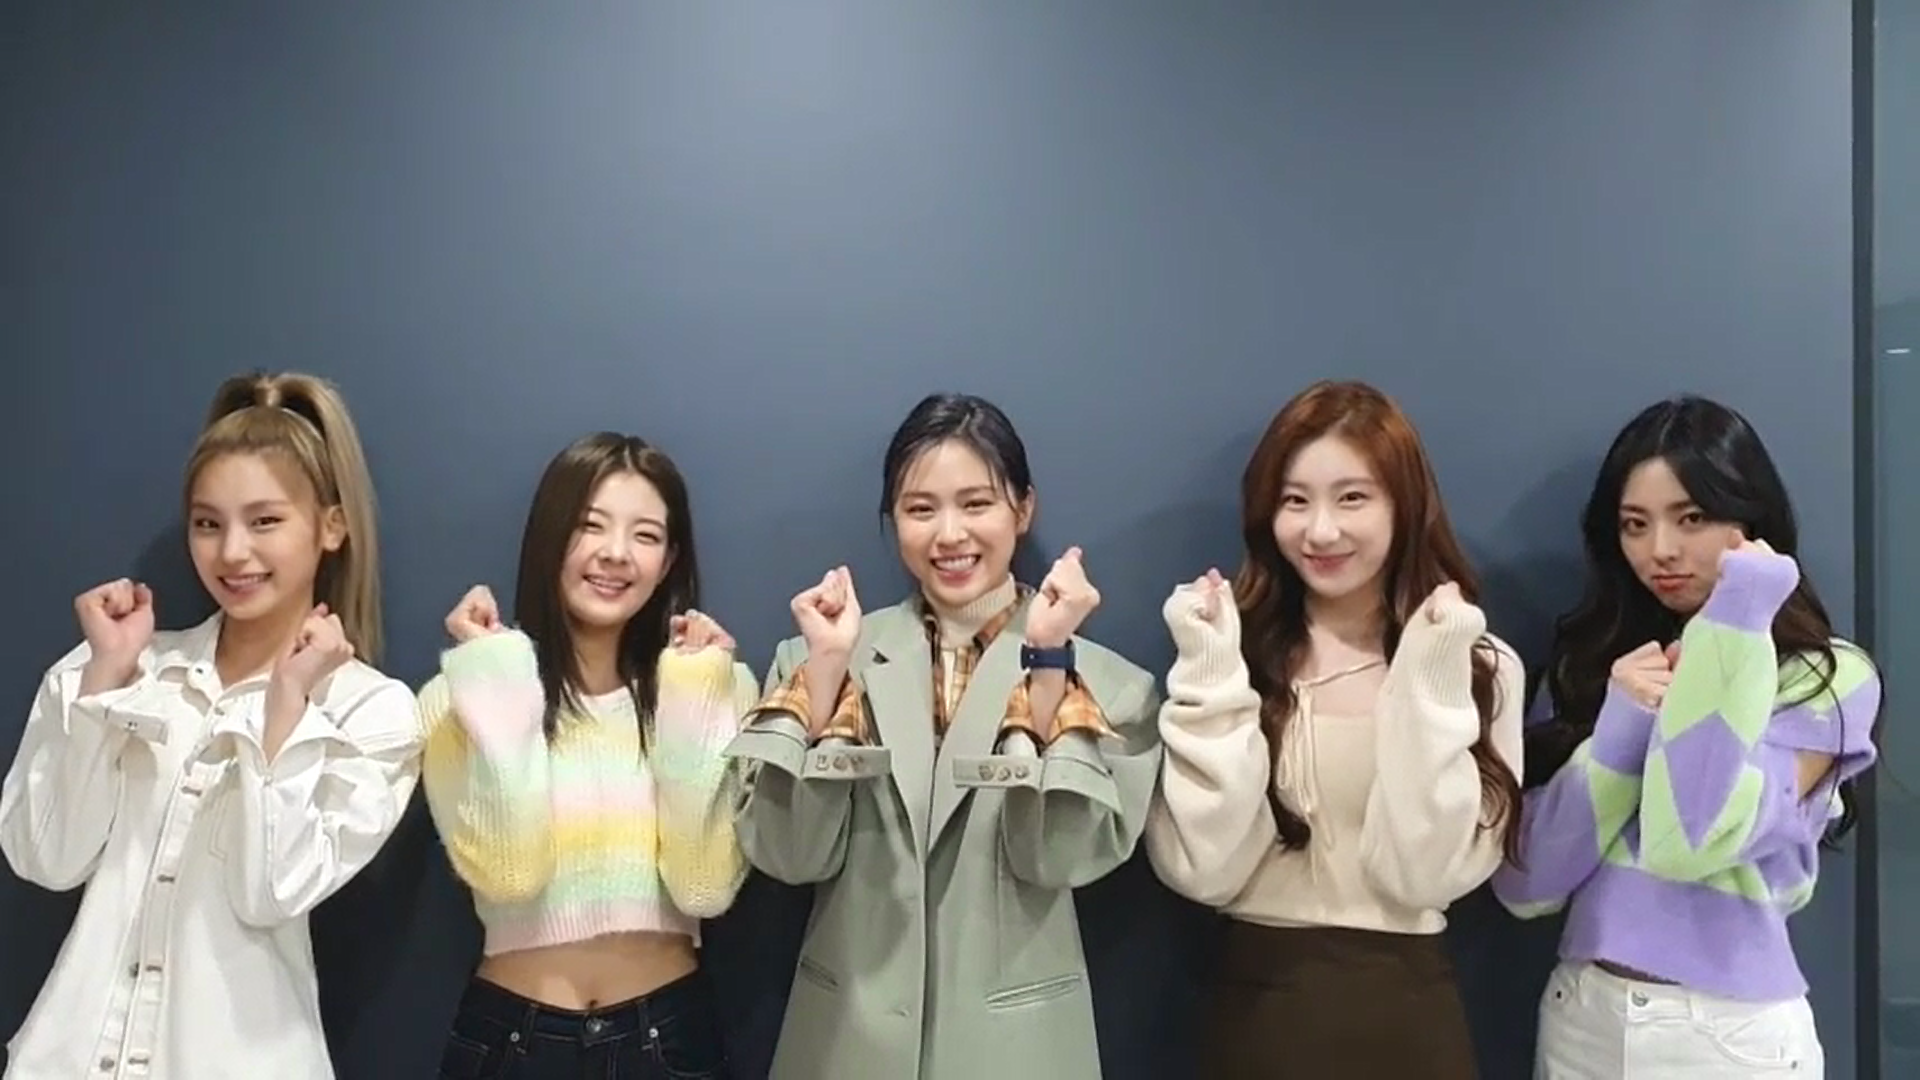 [23 NOV 7:00 PM KST] Unite ON: Live Concert Greeting from ITZY